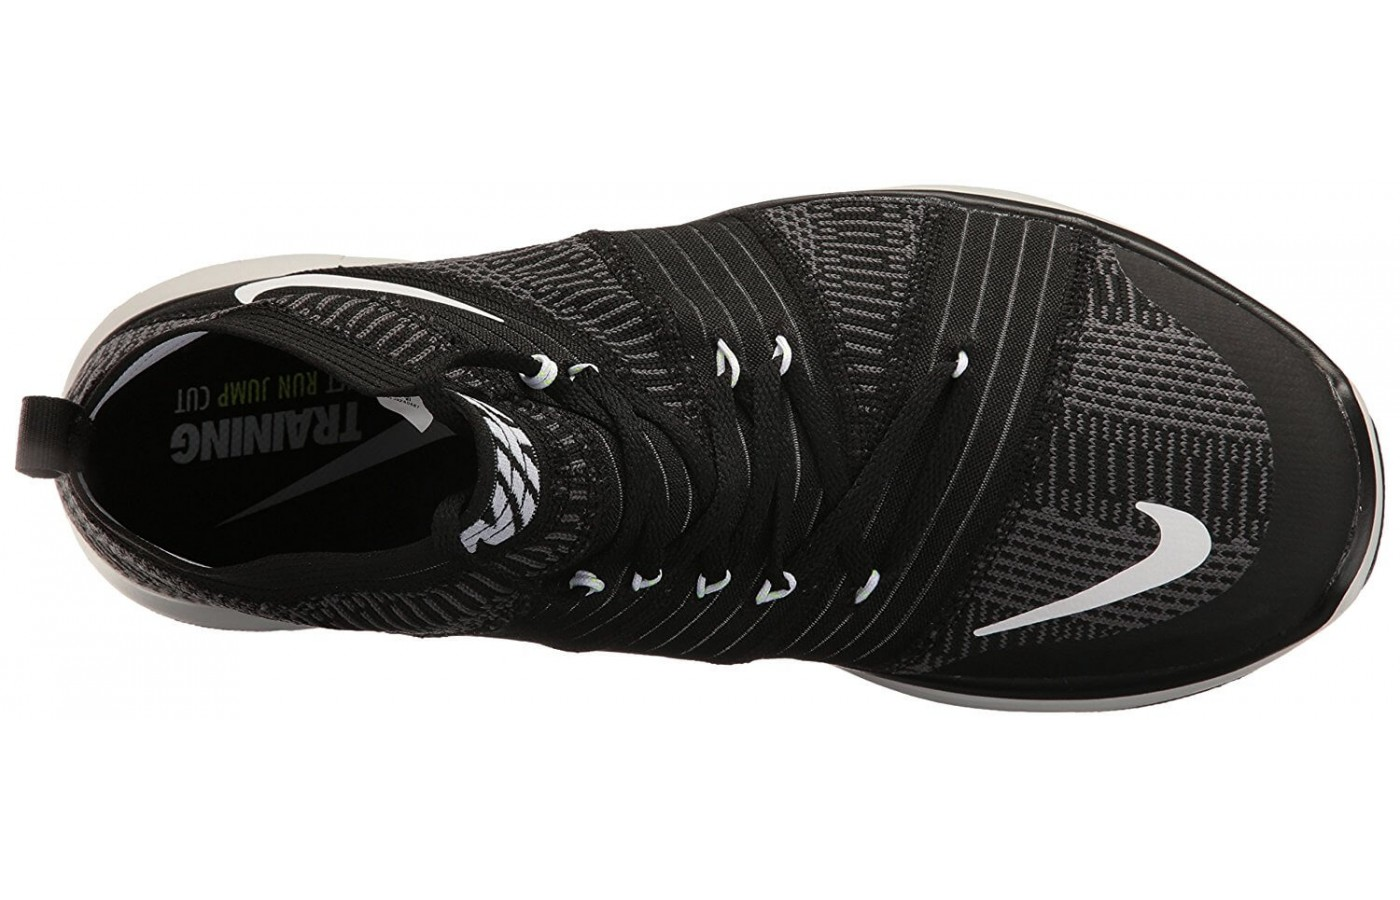 The Nike Free Train Virtue has a Flywire upper